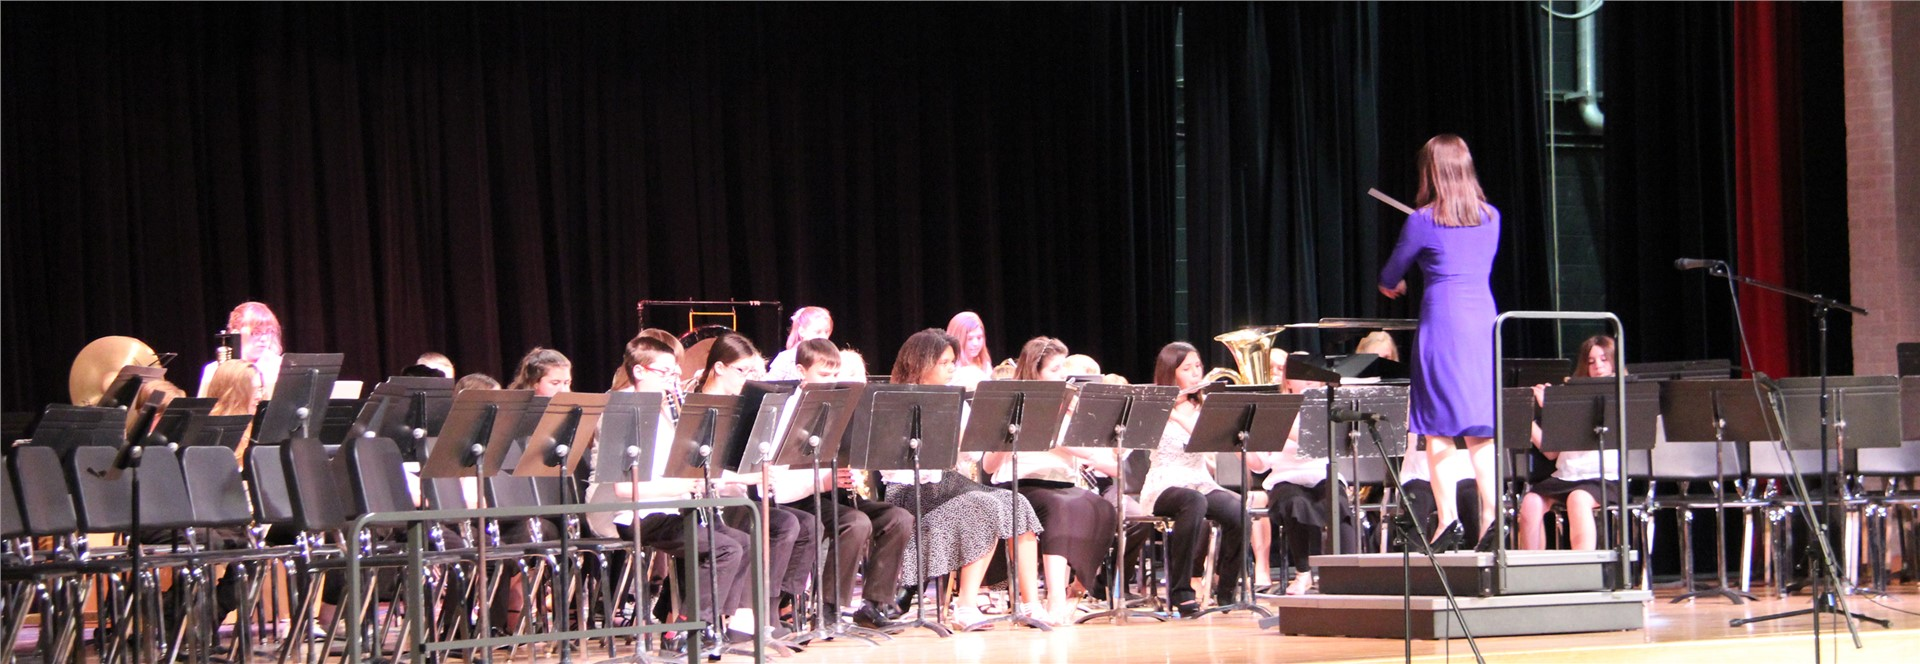 another angle of band performing with teacher conducting